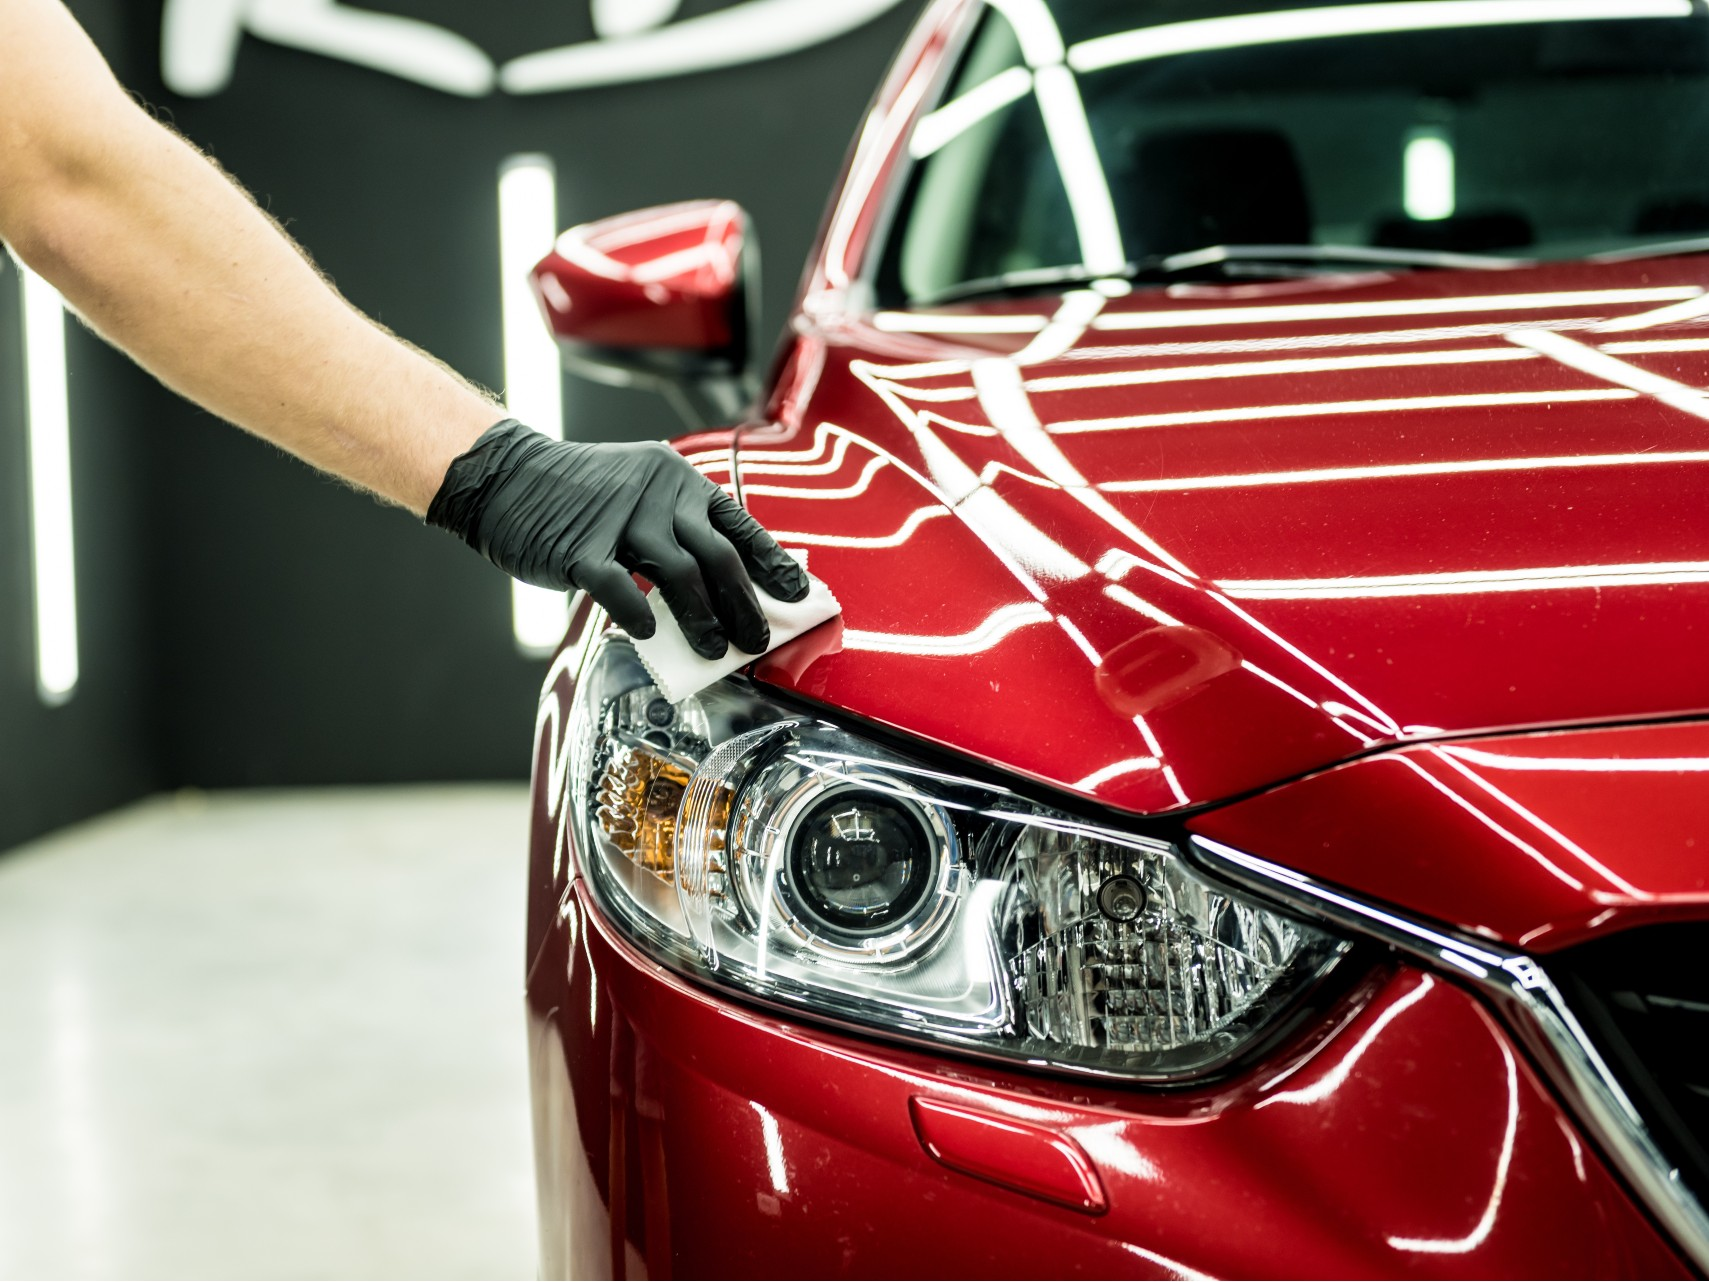 A picture of automotive wet wipes being used on a car